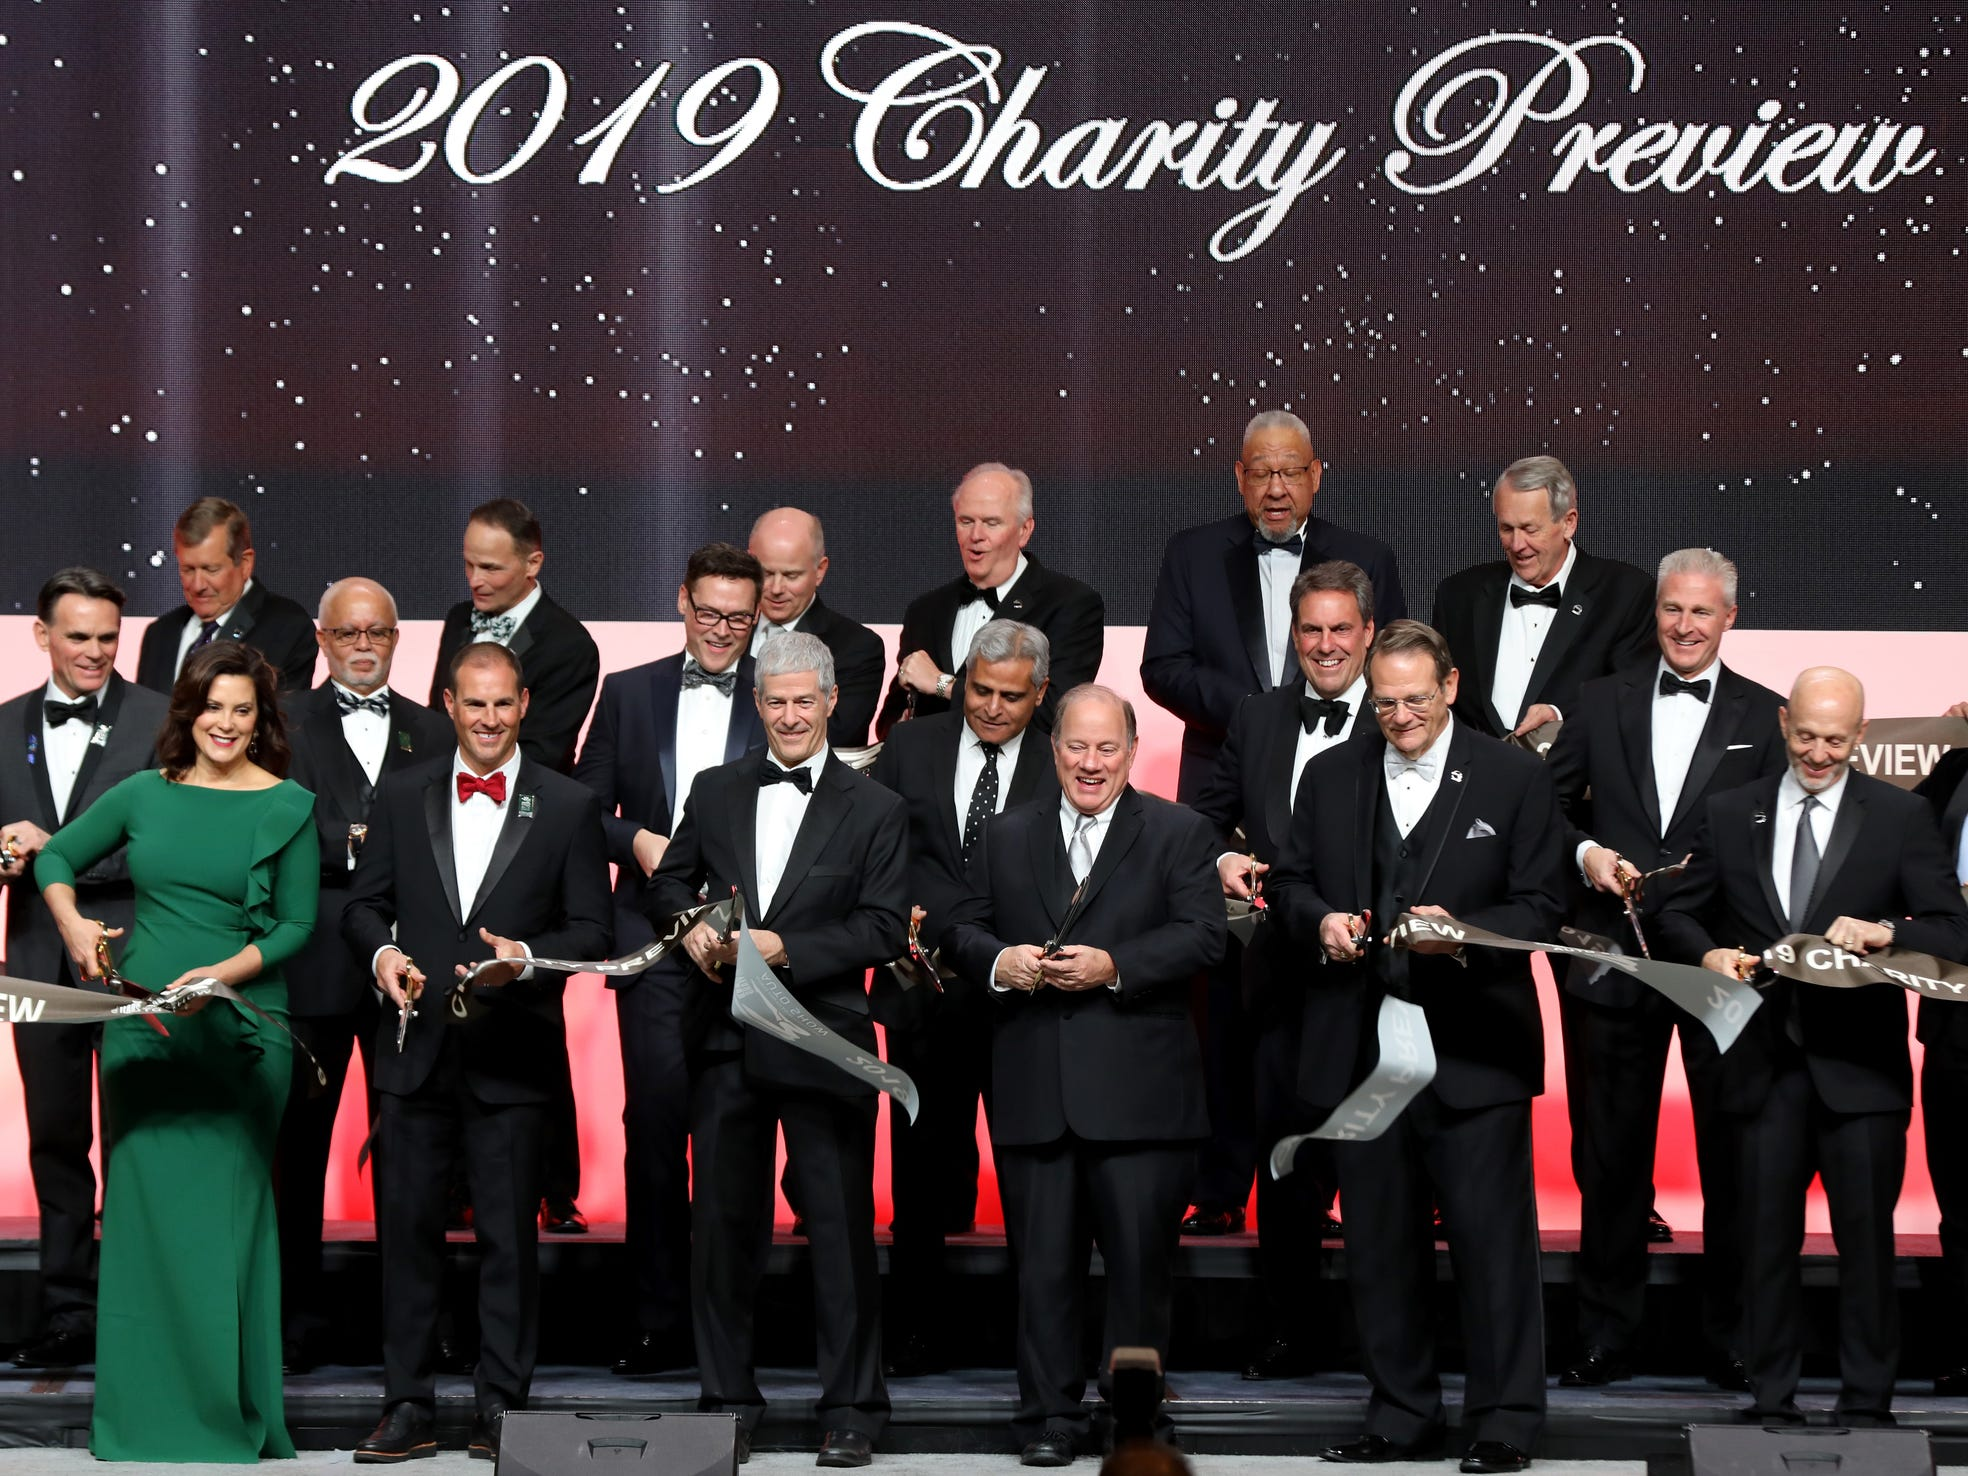 Dignitaries from Governor Gretchen Whitmer to Detroit Mayor Mike Duggan and others cut the ribbon to open the 2019 North American International Auto Show Charity Preview at Cobo Center in Detroit on Friday, January 18, 2019.